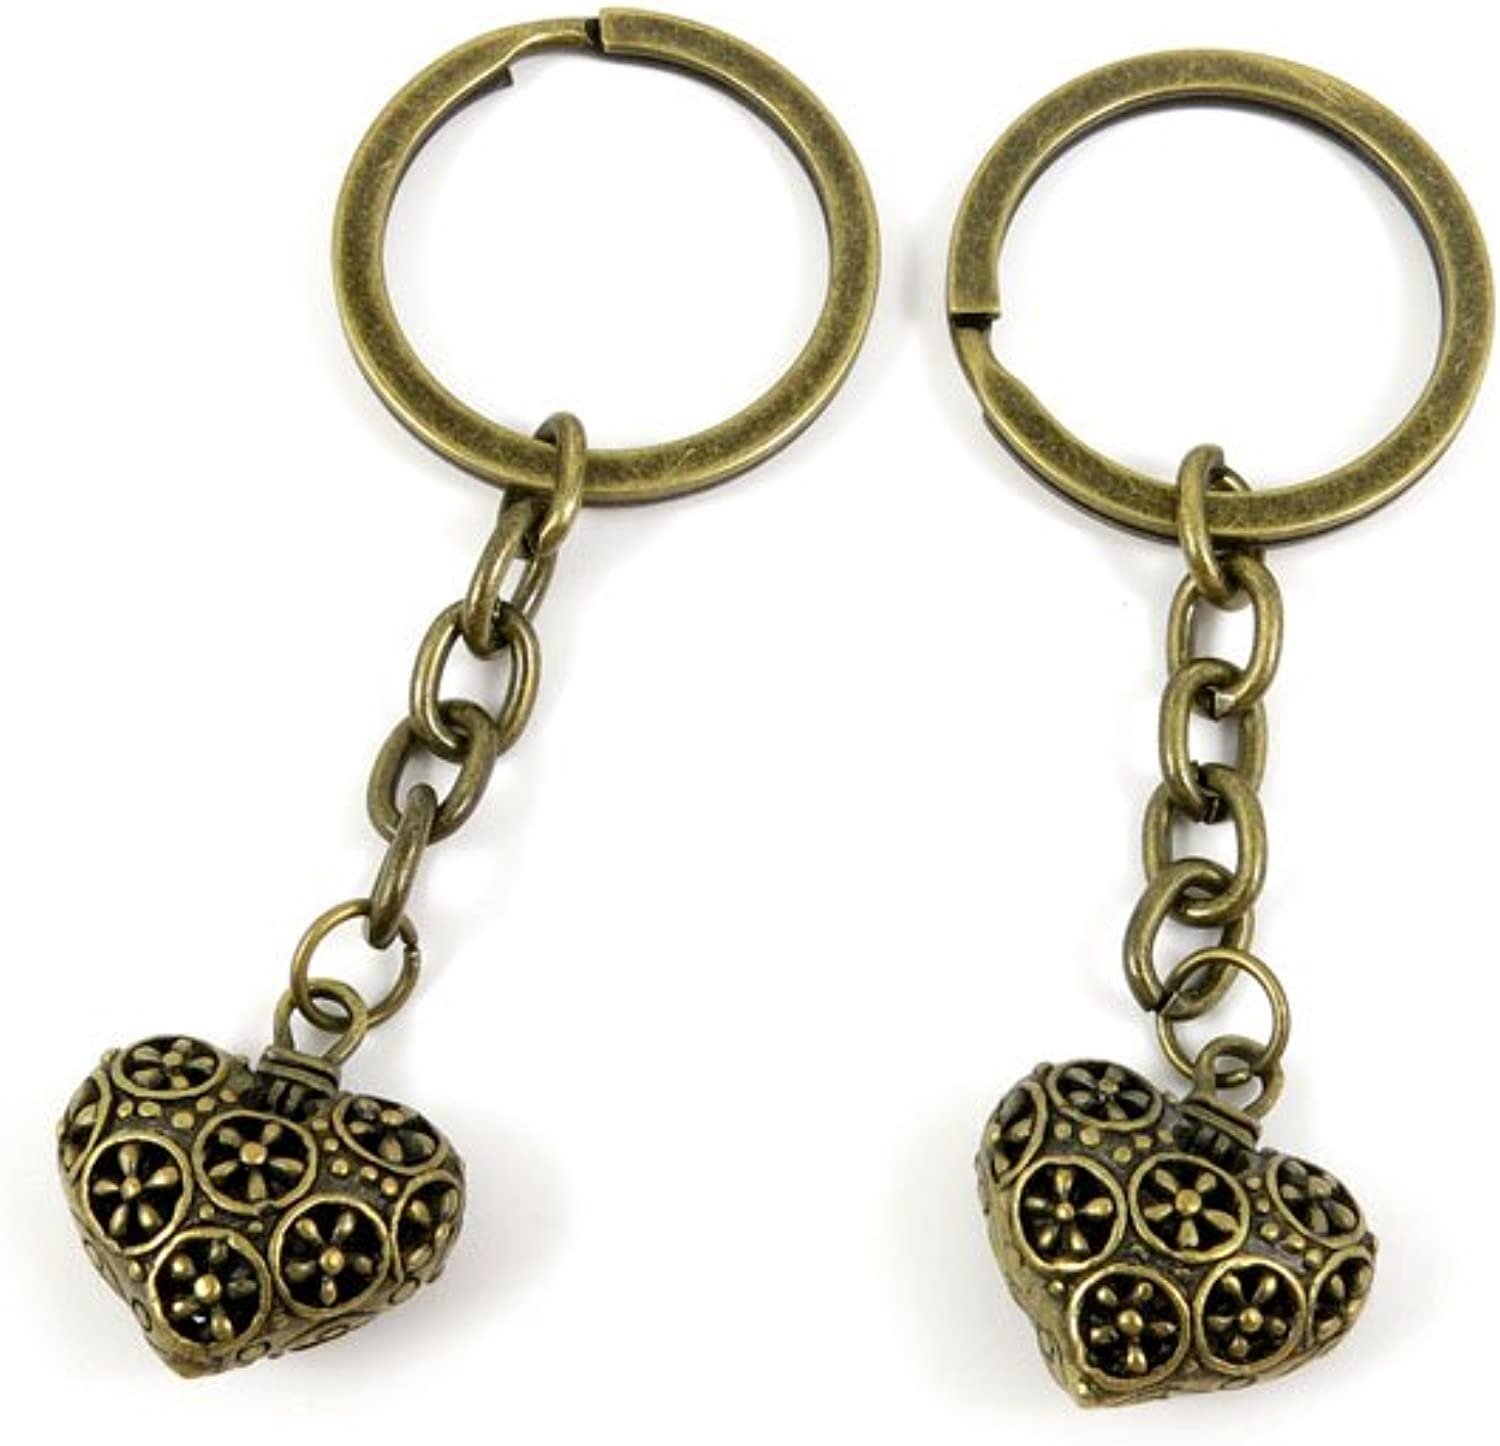 100 PCS Keyrings Keychains Key Ring Chains Tags Jewelry Findings Clasps Buckles Supplies B9MG8 Hollow Heart